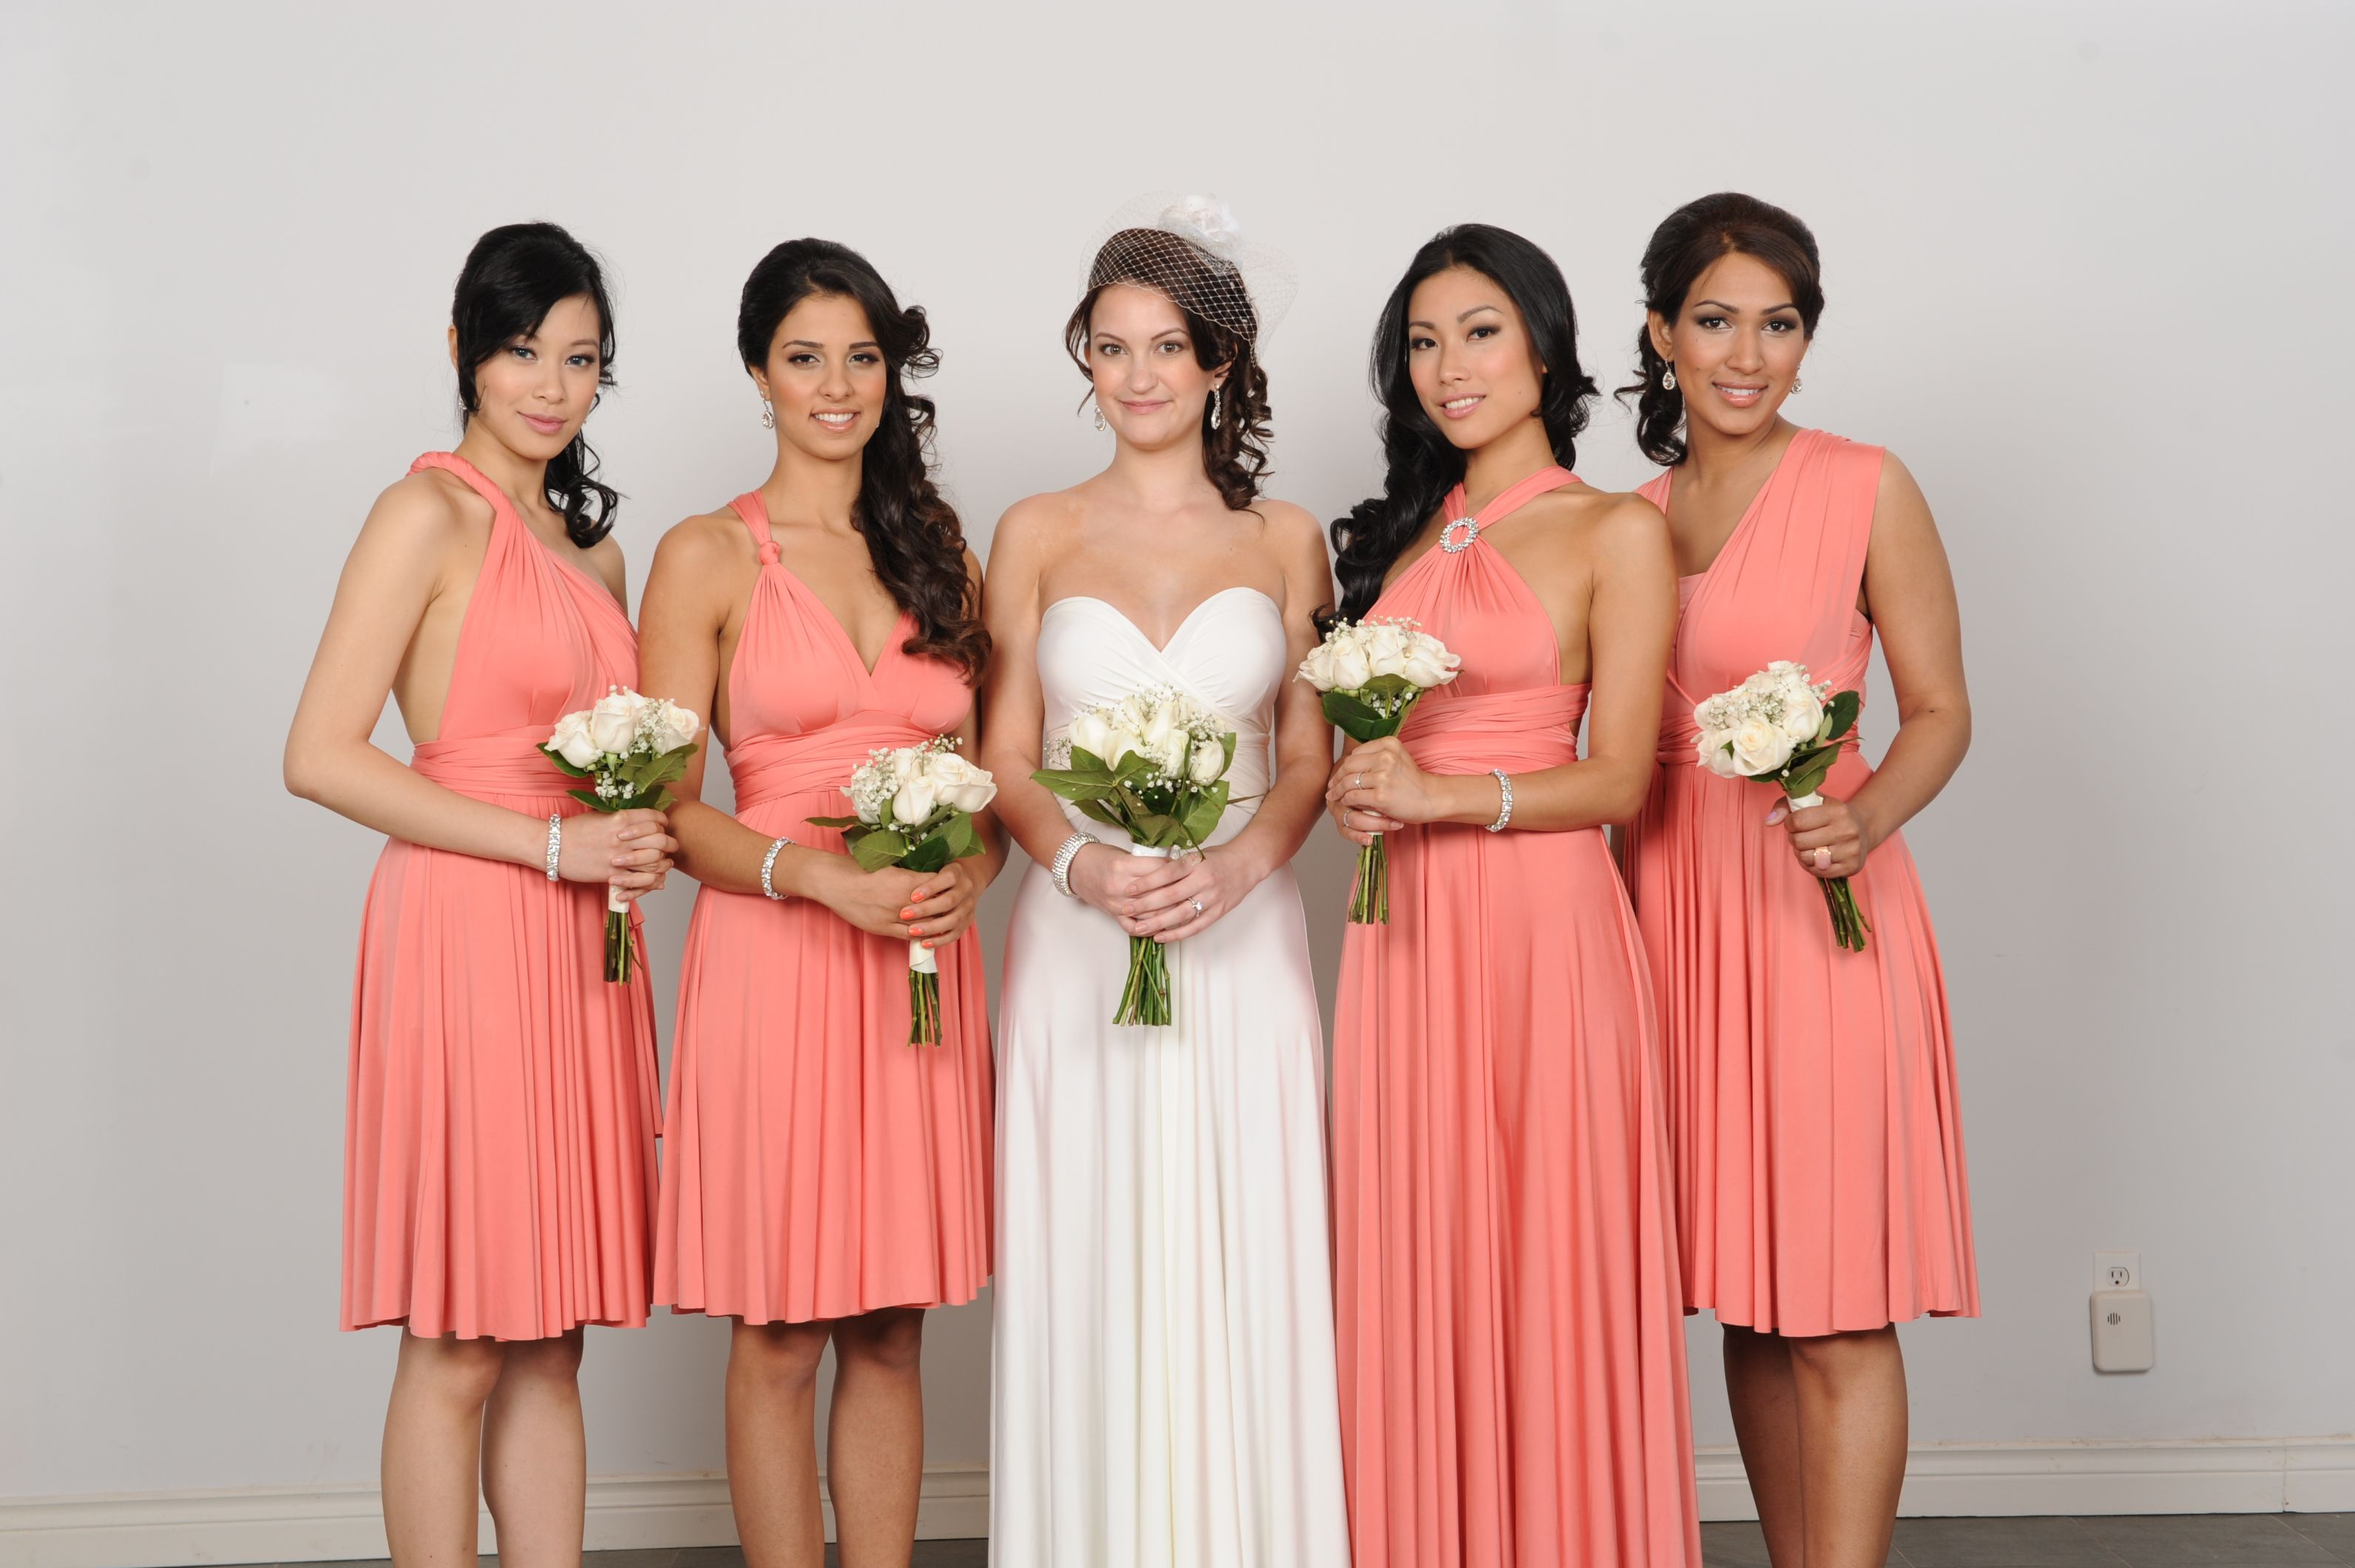 Henkaa convertible bridesmaid dresses and long gown in peach pink henkaa convertible bridesmaid dresses and long gown in peach pink coral and pure ivory ombrellifo Gallery